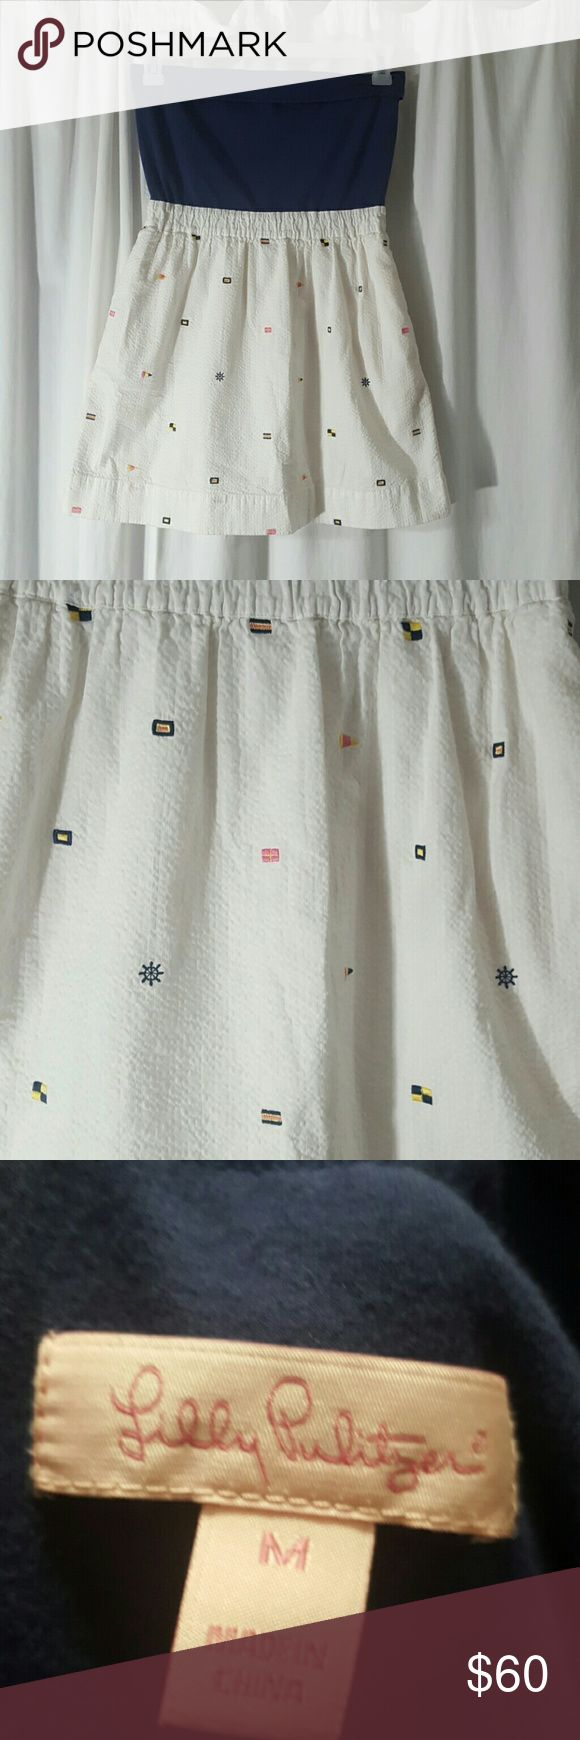 Lilly Pulitzer nautical flag dress. EUC- Adorable, authentic dress by Lilly Pulitzer. Bottom is seersucker and covered in cute little embroidered nautical flags. What could be better? Pockets! A must have for boaters and water lovers. Size M. Dresses Strapless